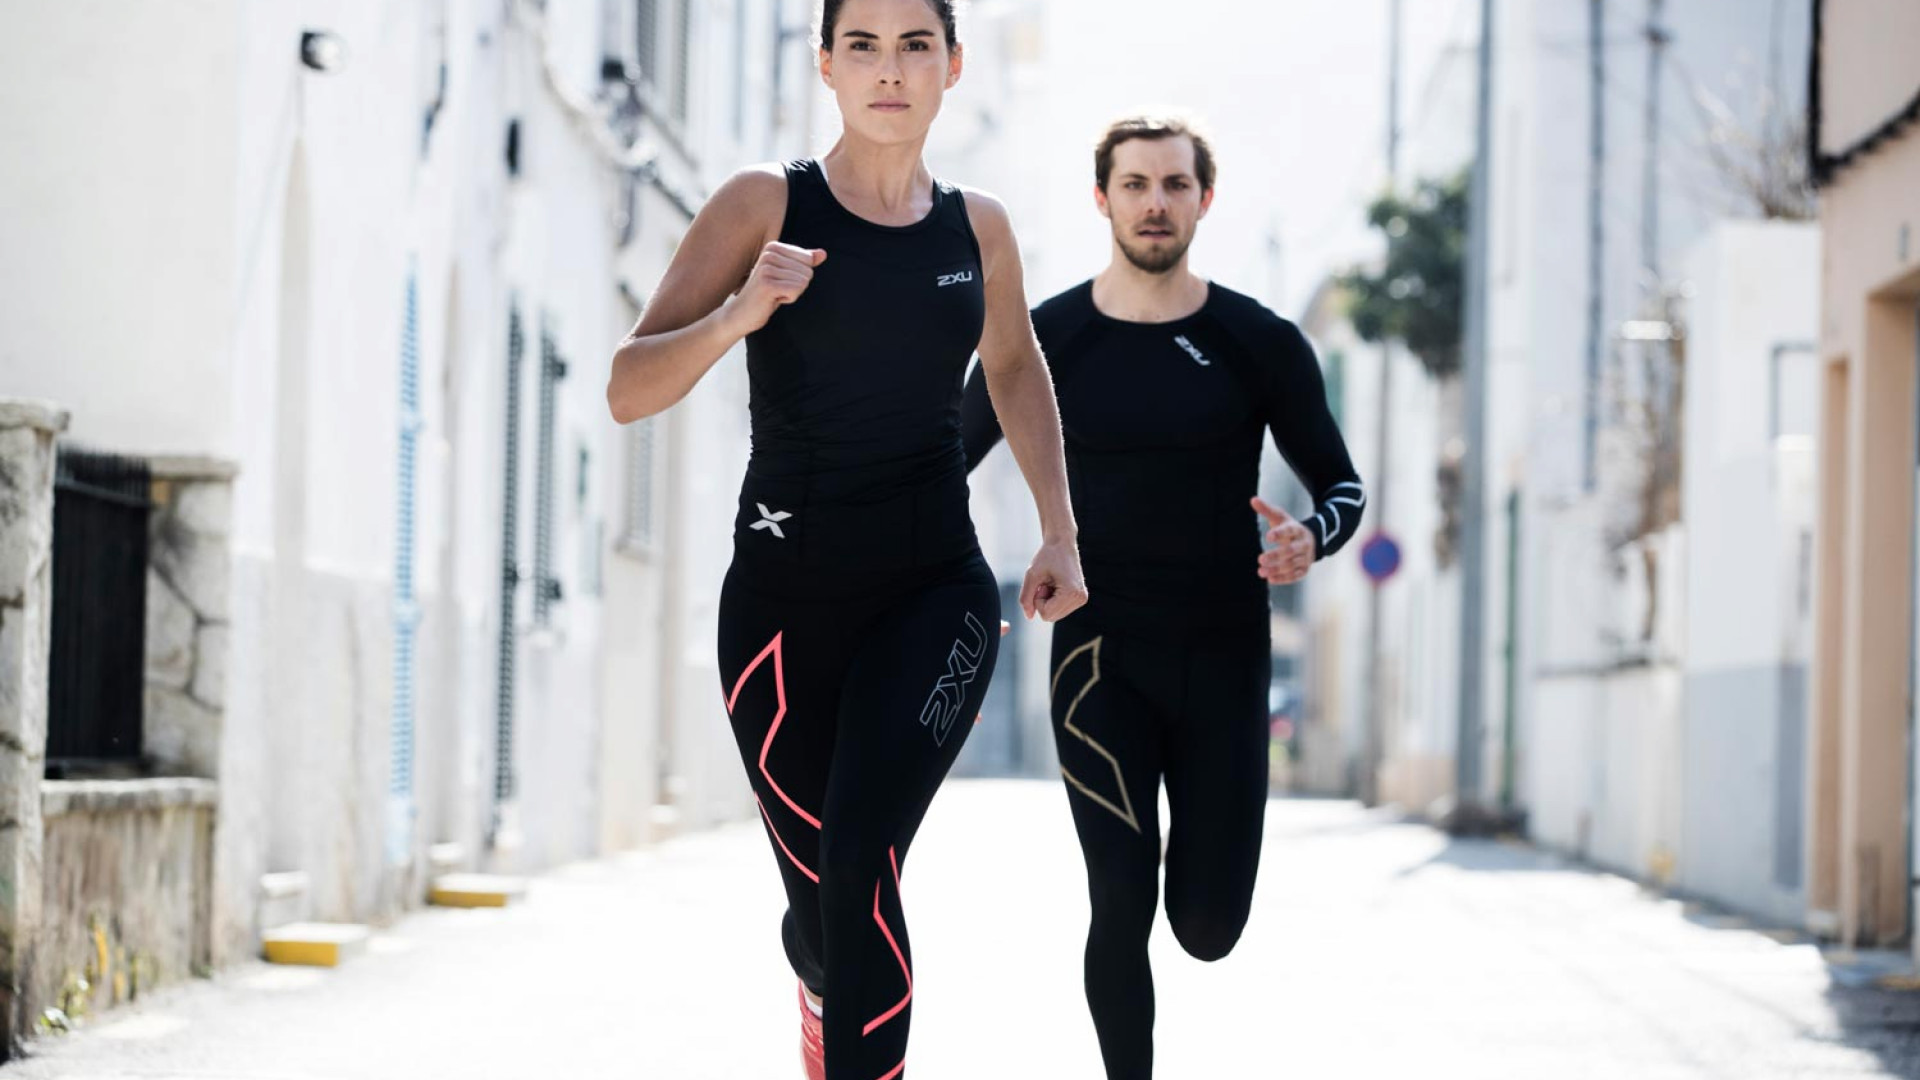 Runners in 2XU compression garments